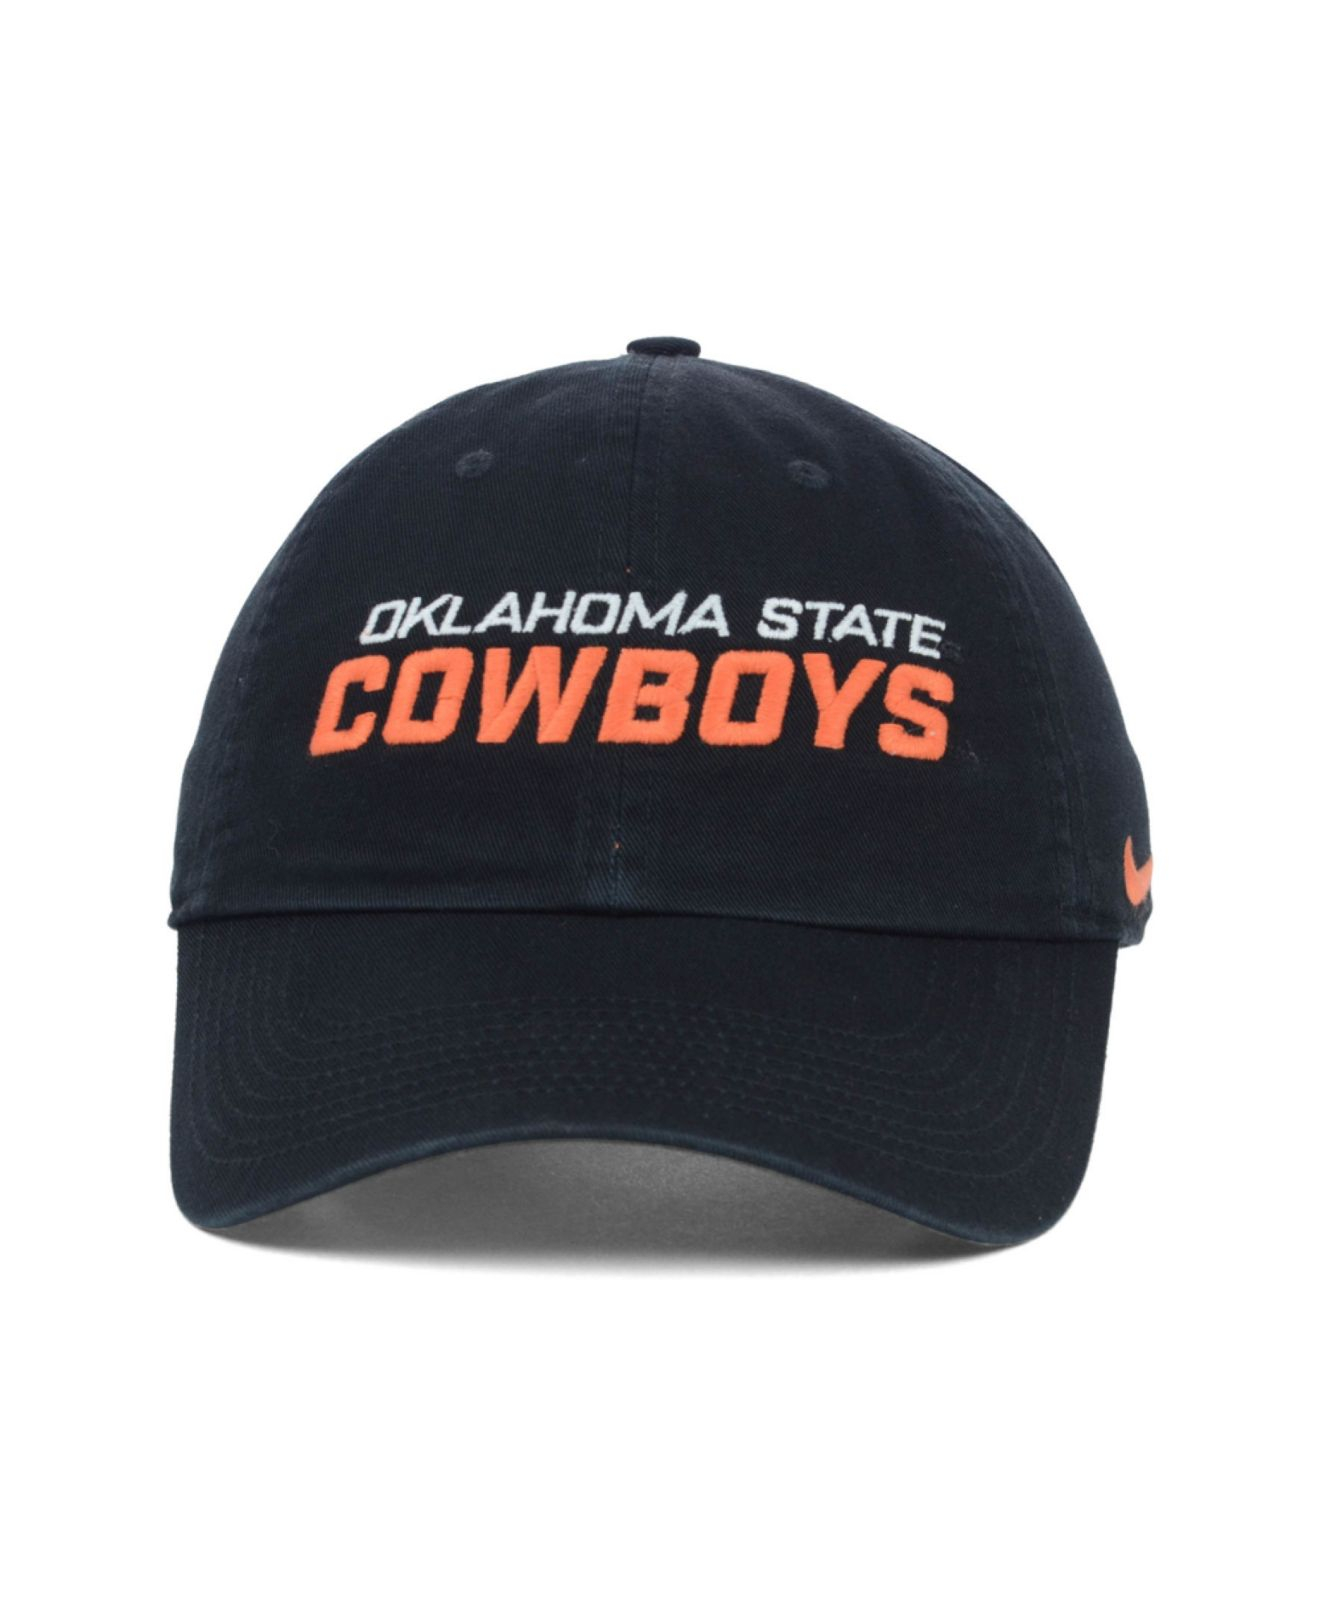 cca7cfed683 ... inexpensive lyst nike oklahoma state cowboys heritage 86 campus cap in  black 286f3 da112 ...